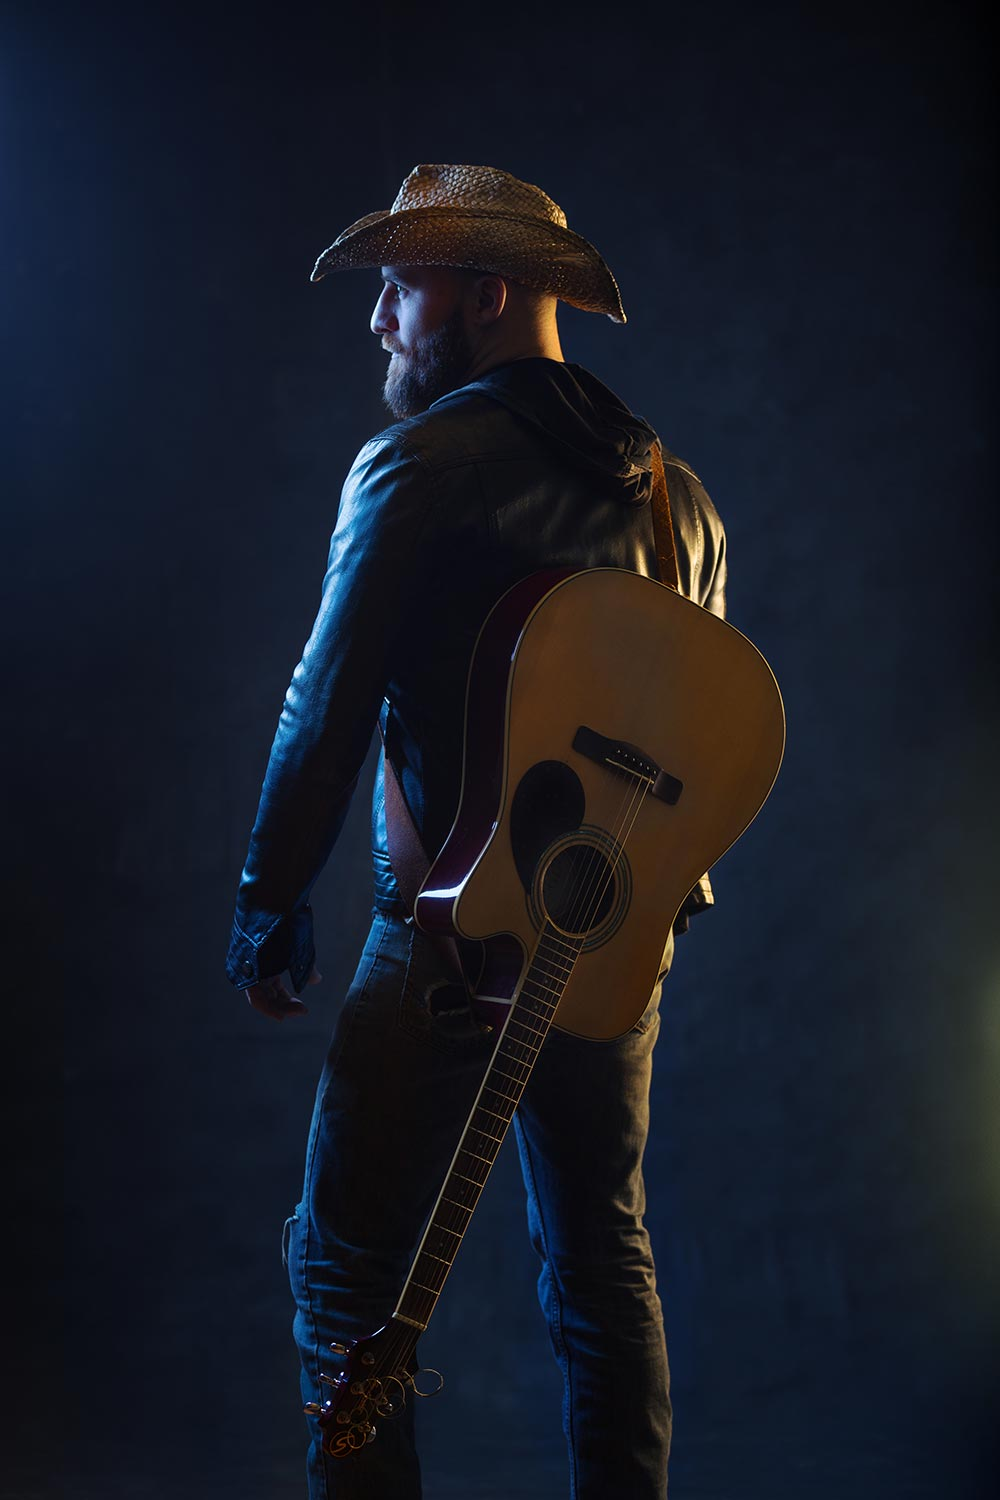 Musician poses with guitar in dramatic colored light